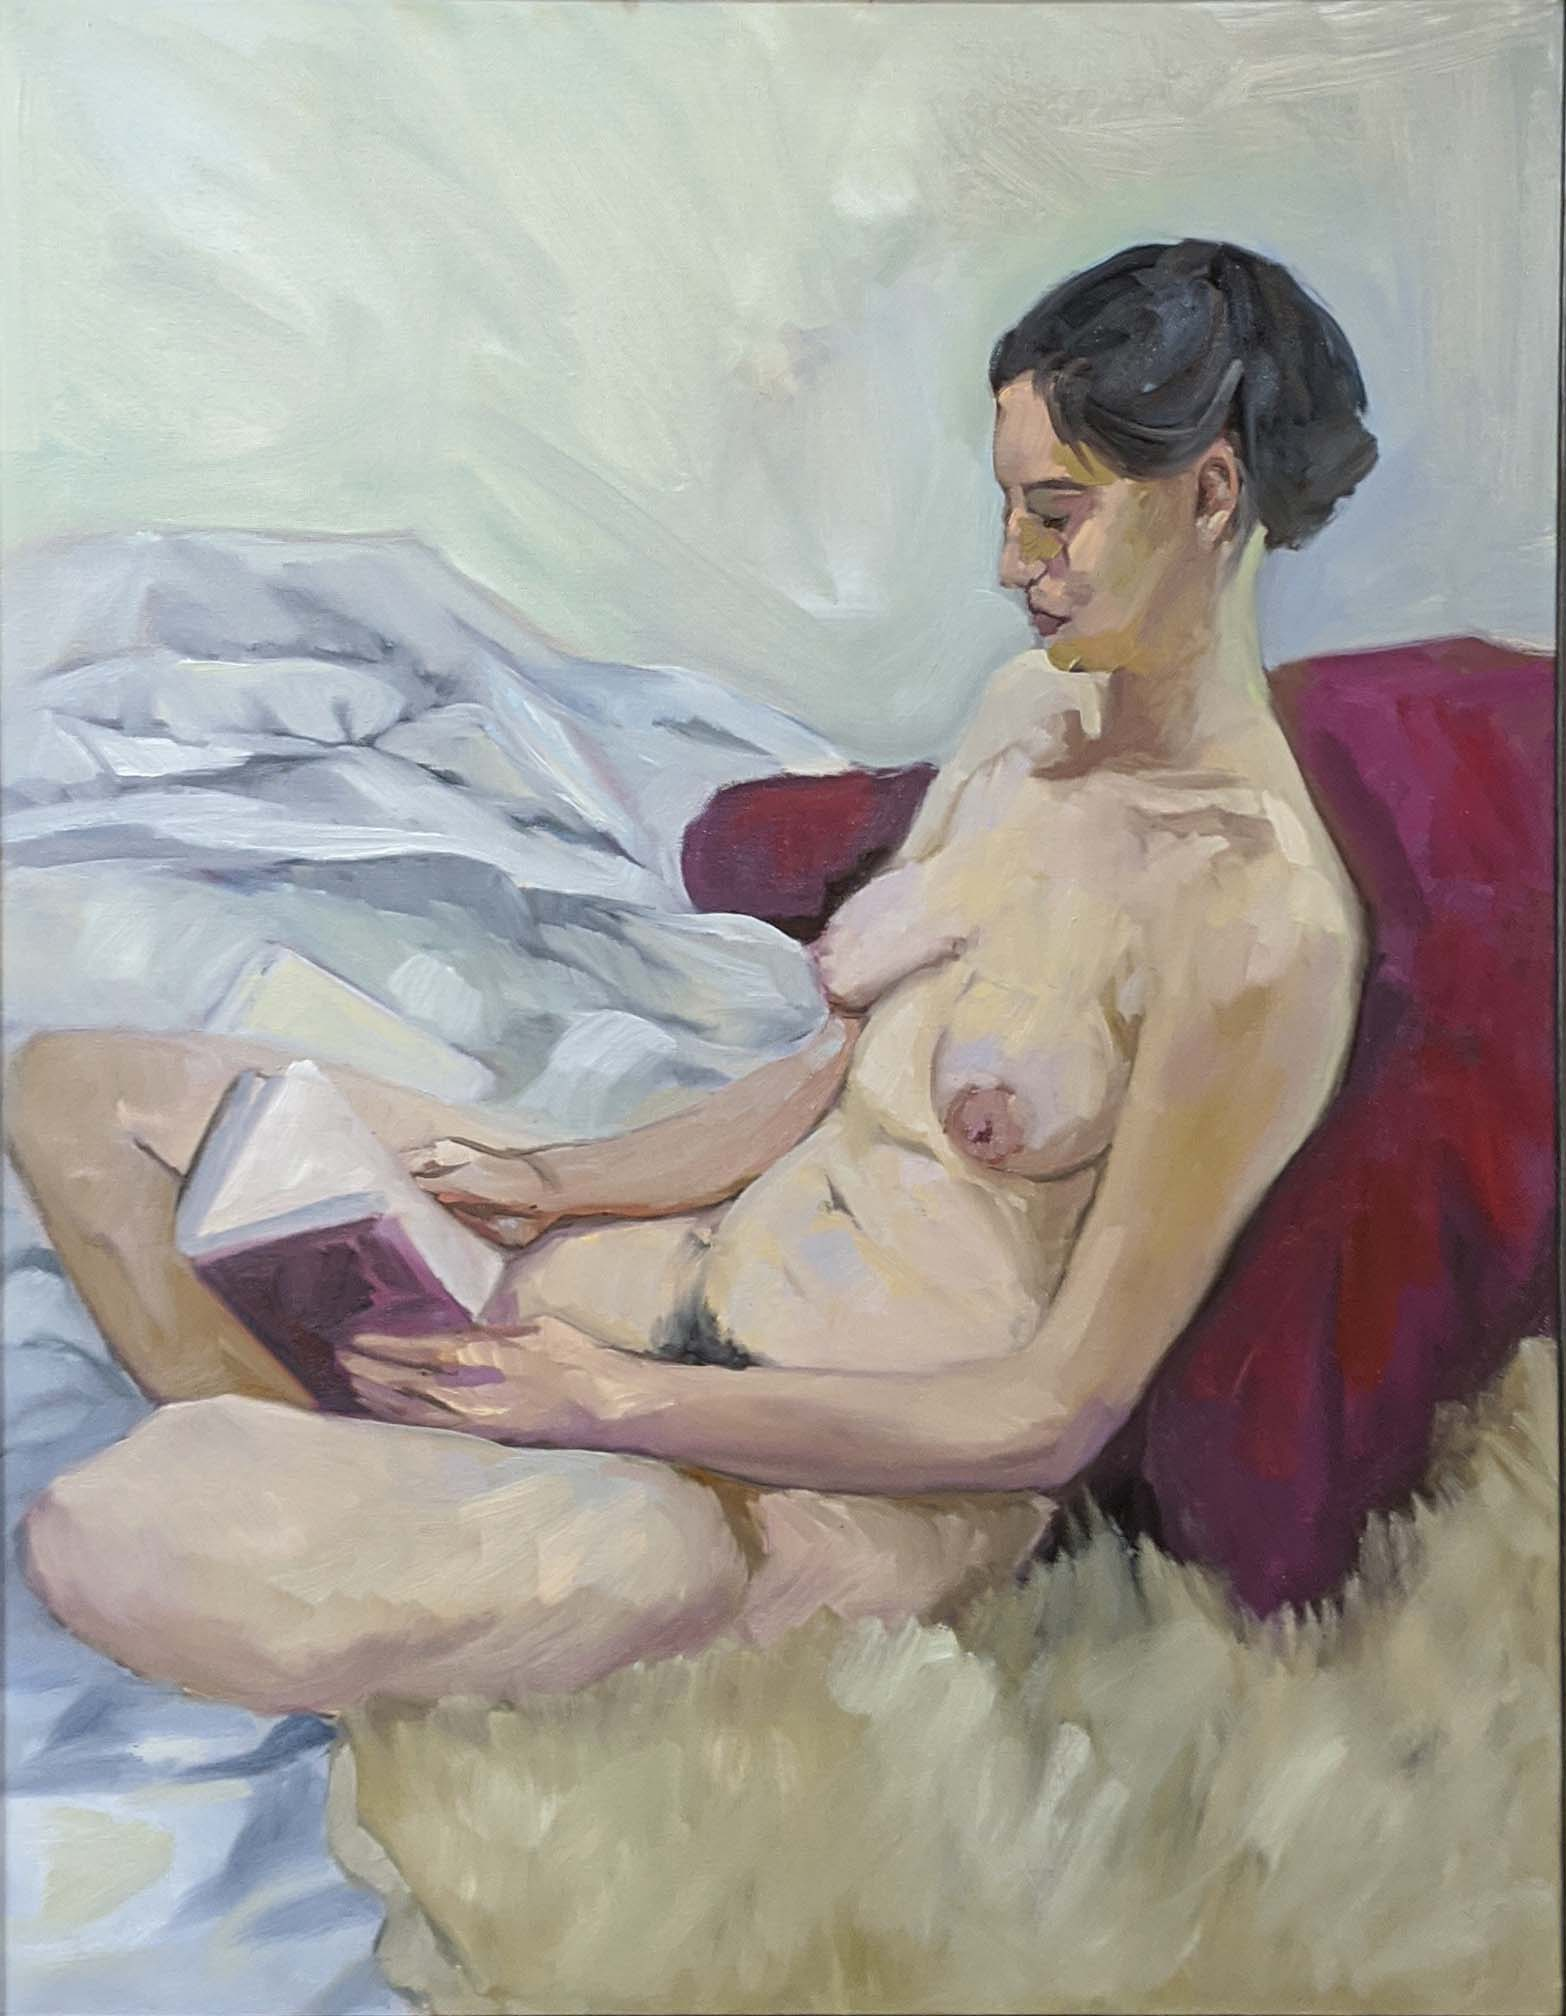 Michelle Reading, oil on linen, available through Rye Arts Center.